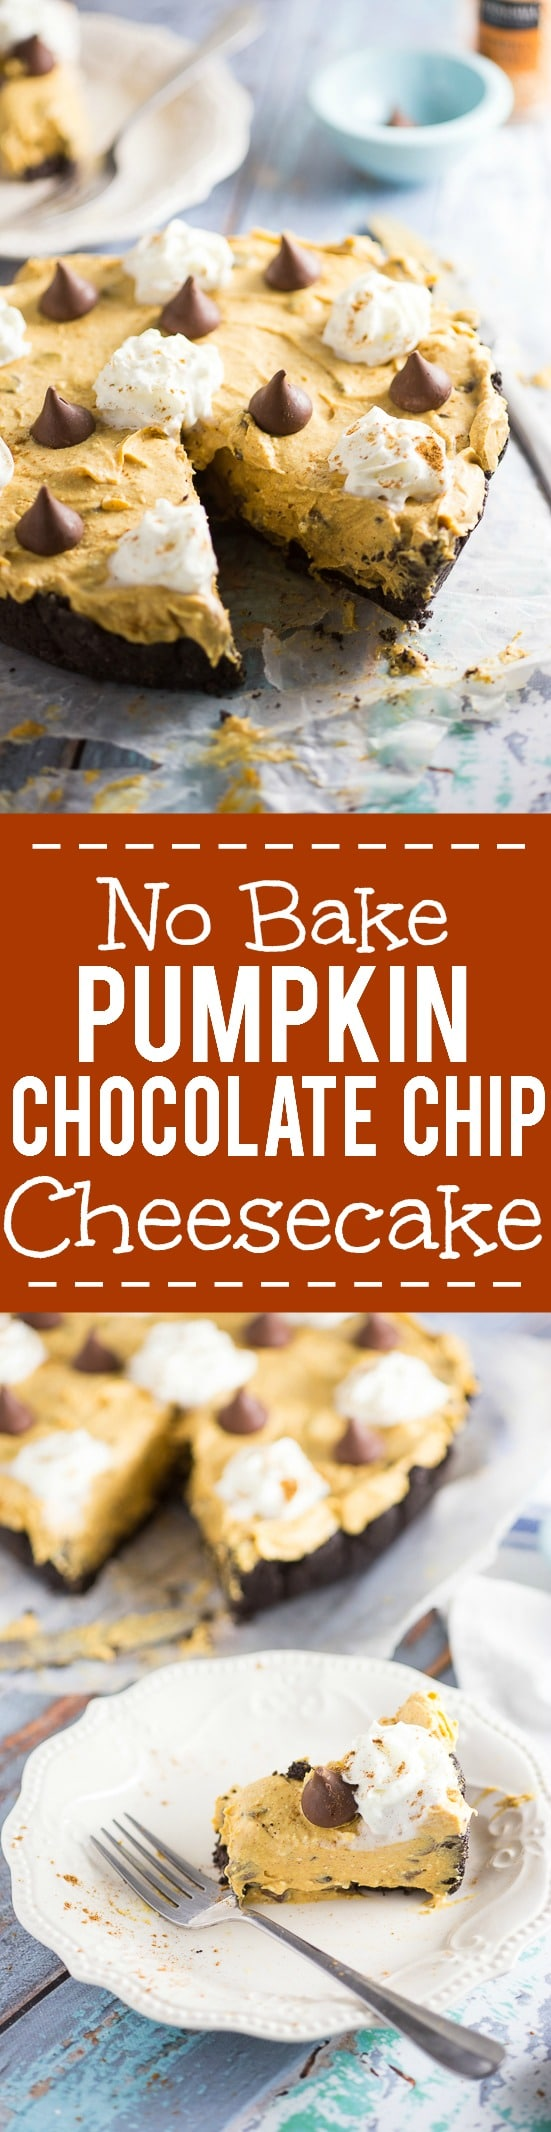 No Bake Pumpkin Chocolate Cheesecake Recipe - Festive, delicious, and easy No Bake Pumpkin Chocolate Cheesecake with a no bake pumpkin spice filling and chocolate chips in a chocolate Oreo crust. Perfect for both pumpkin spice lovers and chocolate lovers! No bake pumpkin spice cheesecake, chocolate chips, and a chocolate oreo crust?! Sounds amazing. Would be an easy Thanksgiving dessert recipe too!